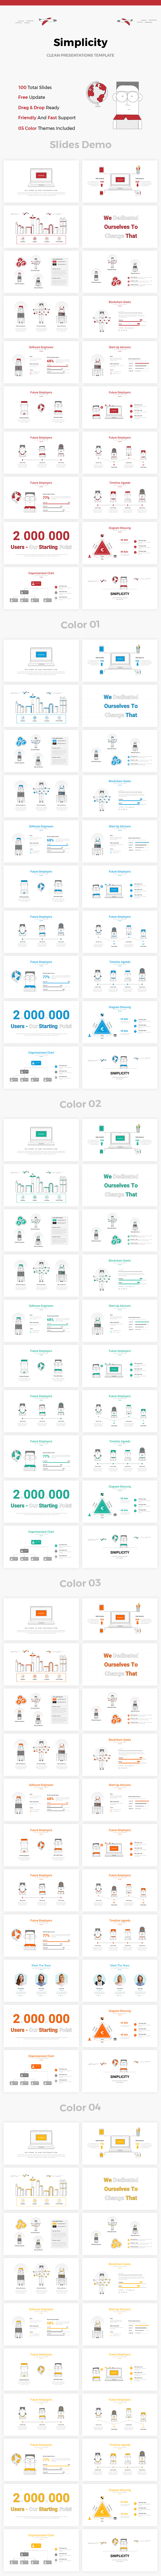 Simplicity - Multipurpose PowerPoint Template - PowerPoint Templates Presentation Templates